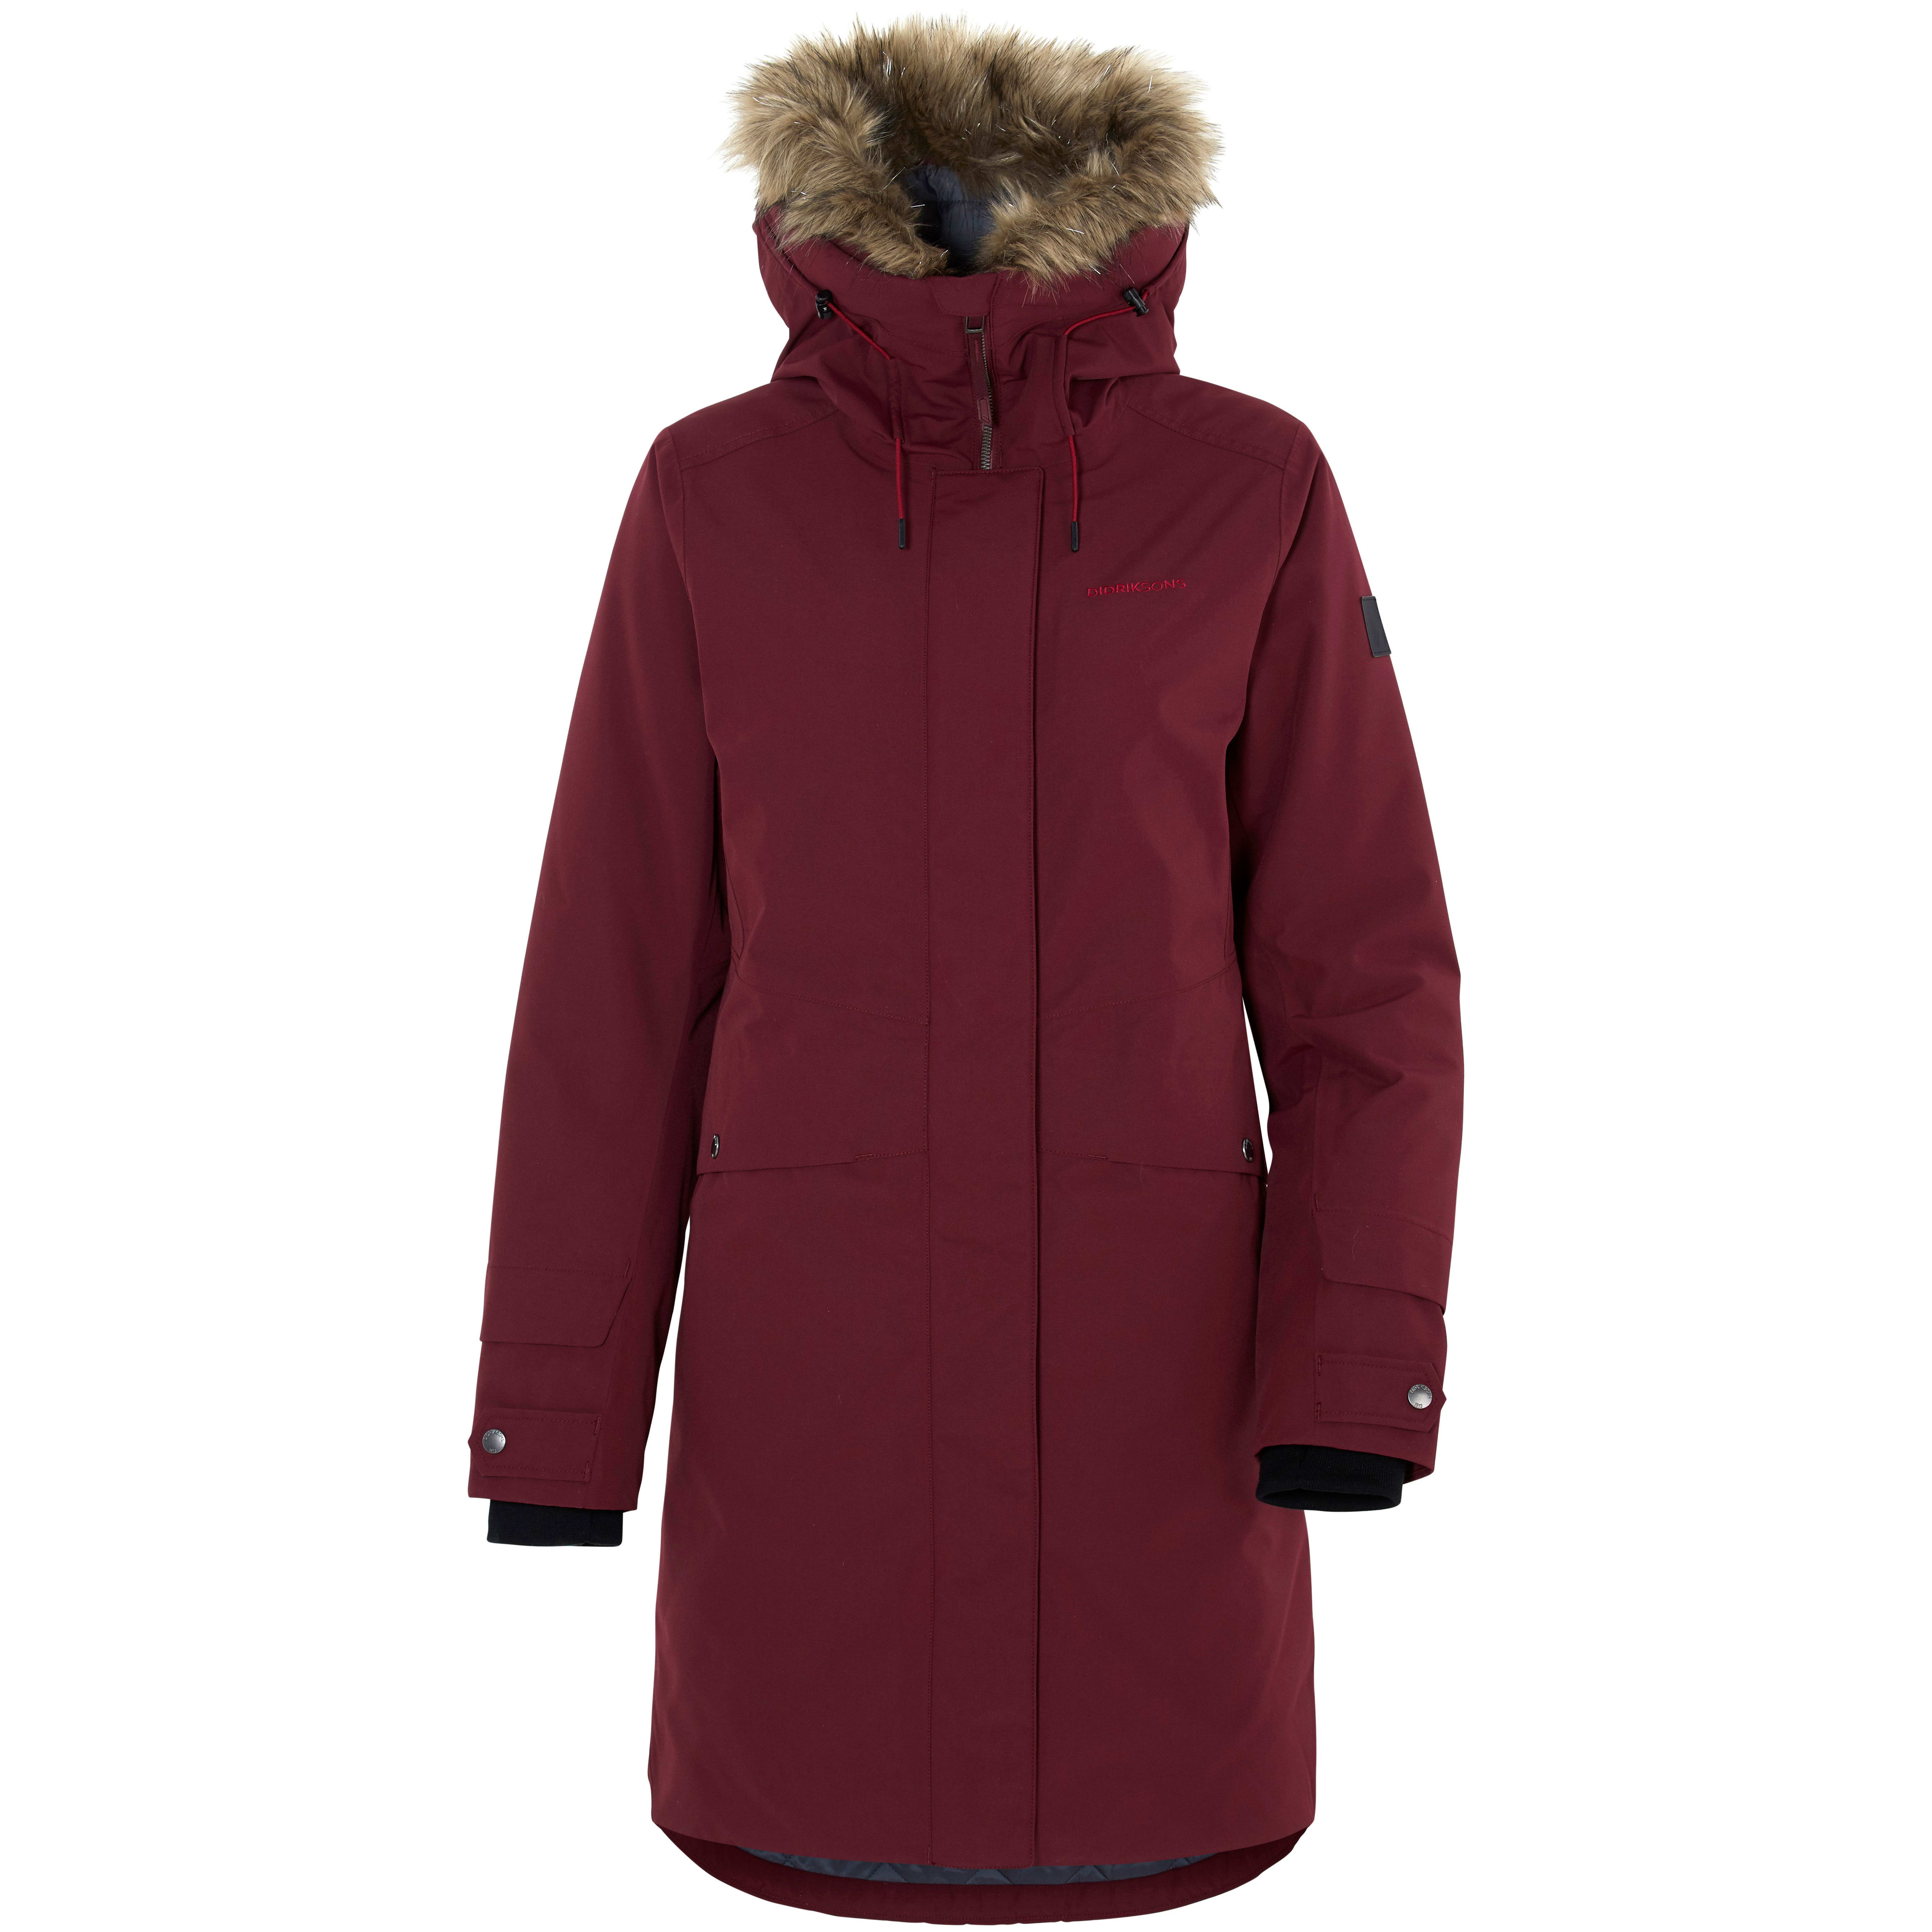 Buy Didriksons Elin Women's Parka from Outnorth